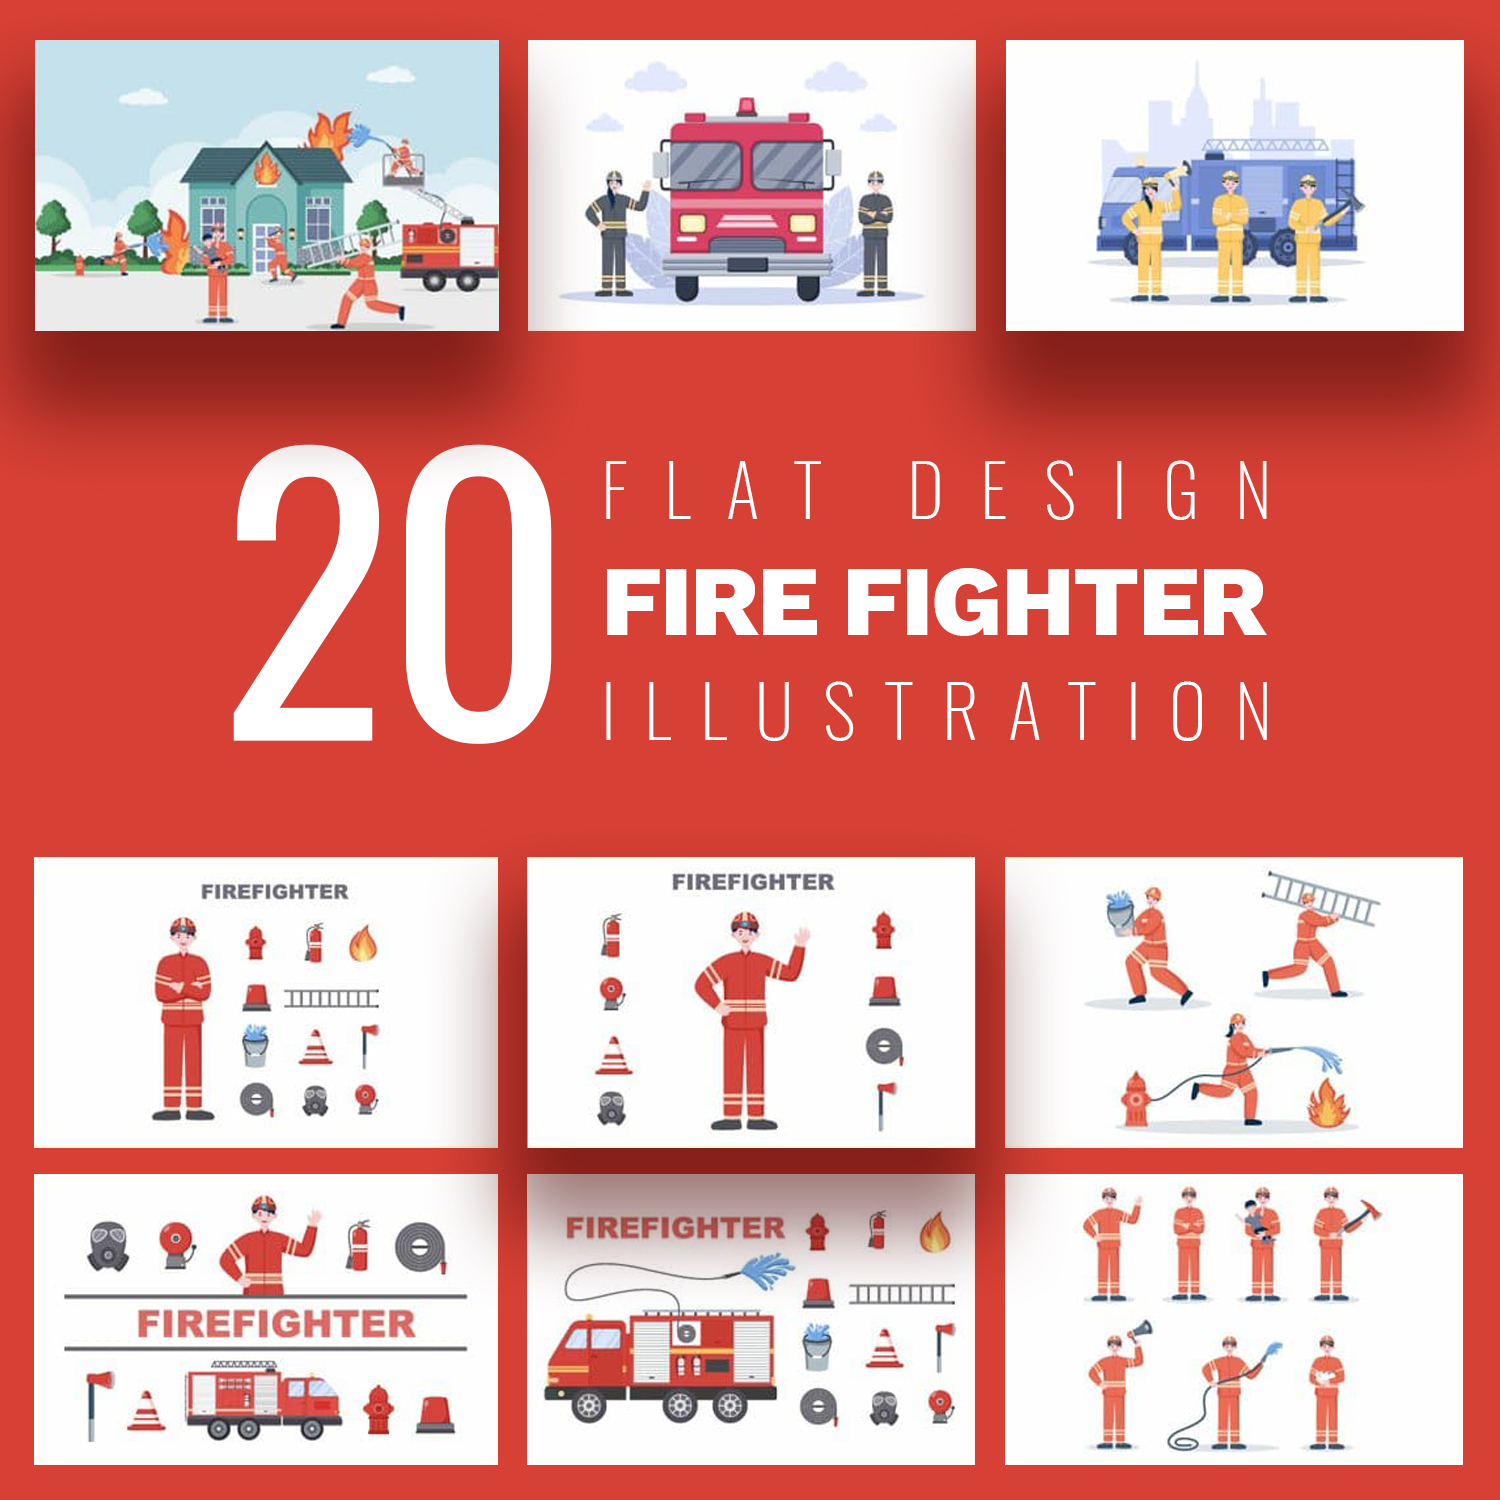 20 Group of Firefighters Illustration cover image.